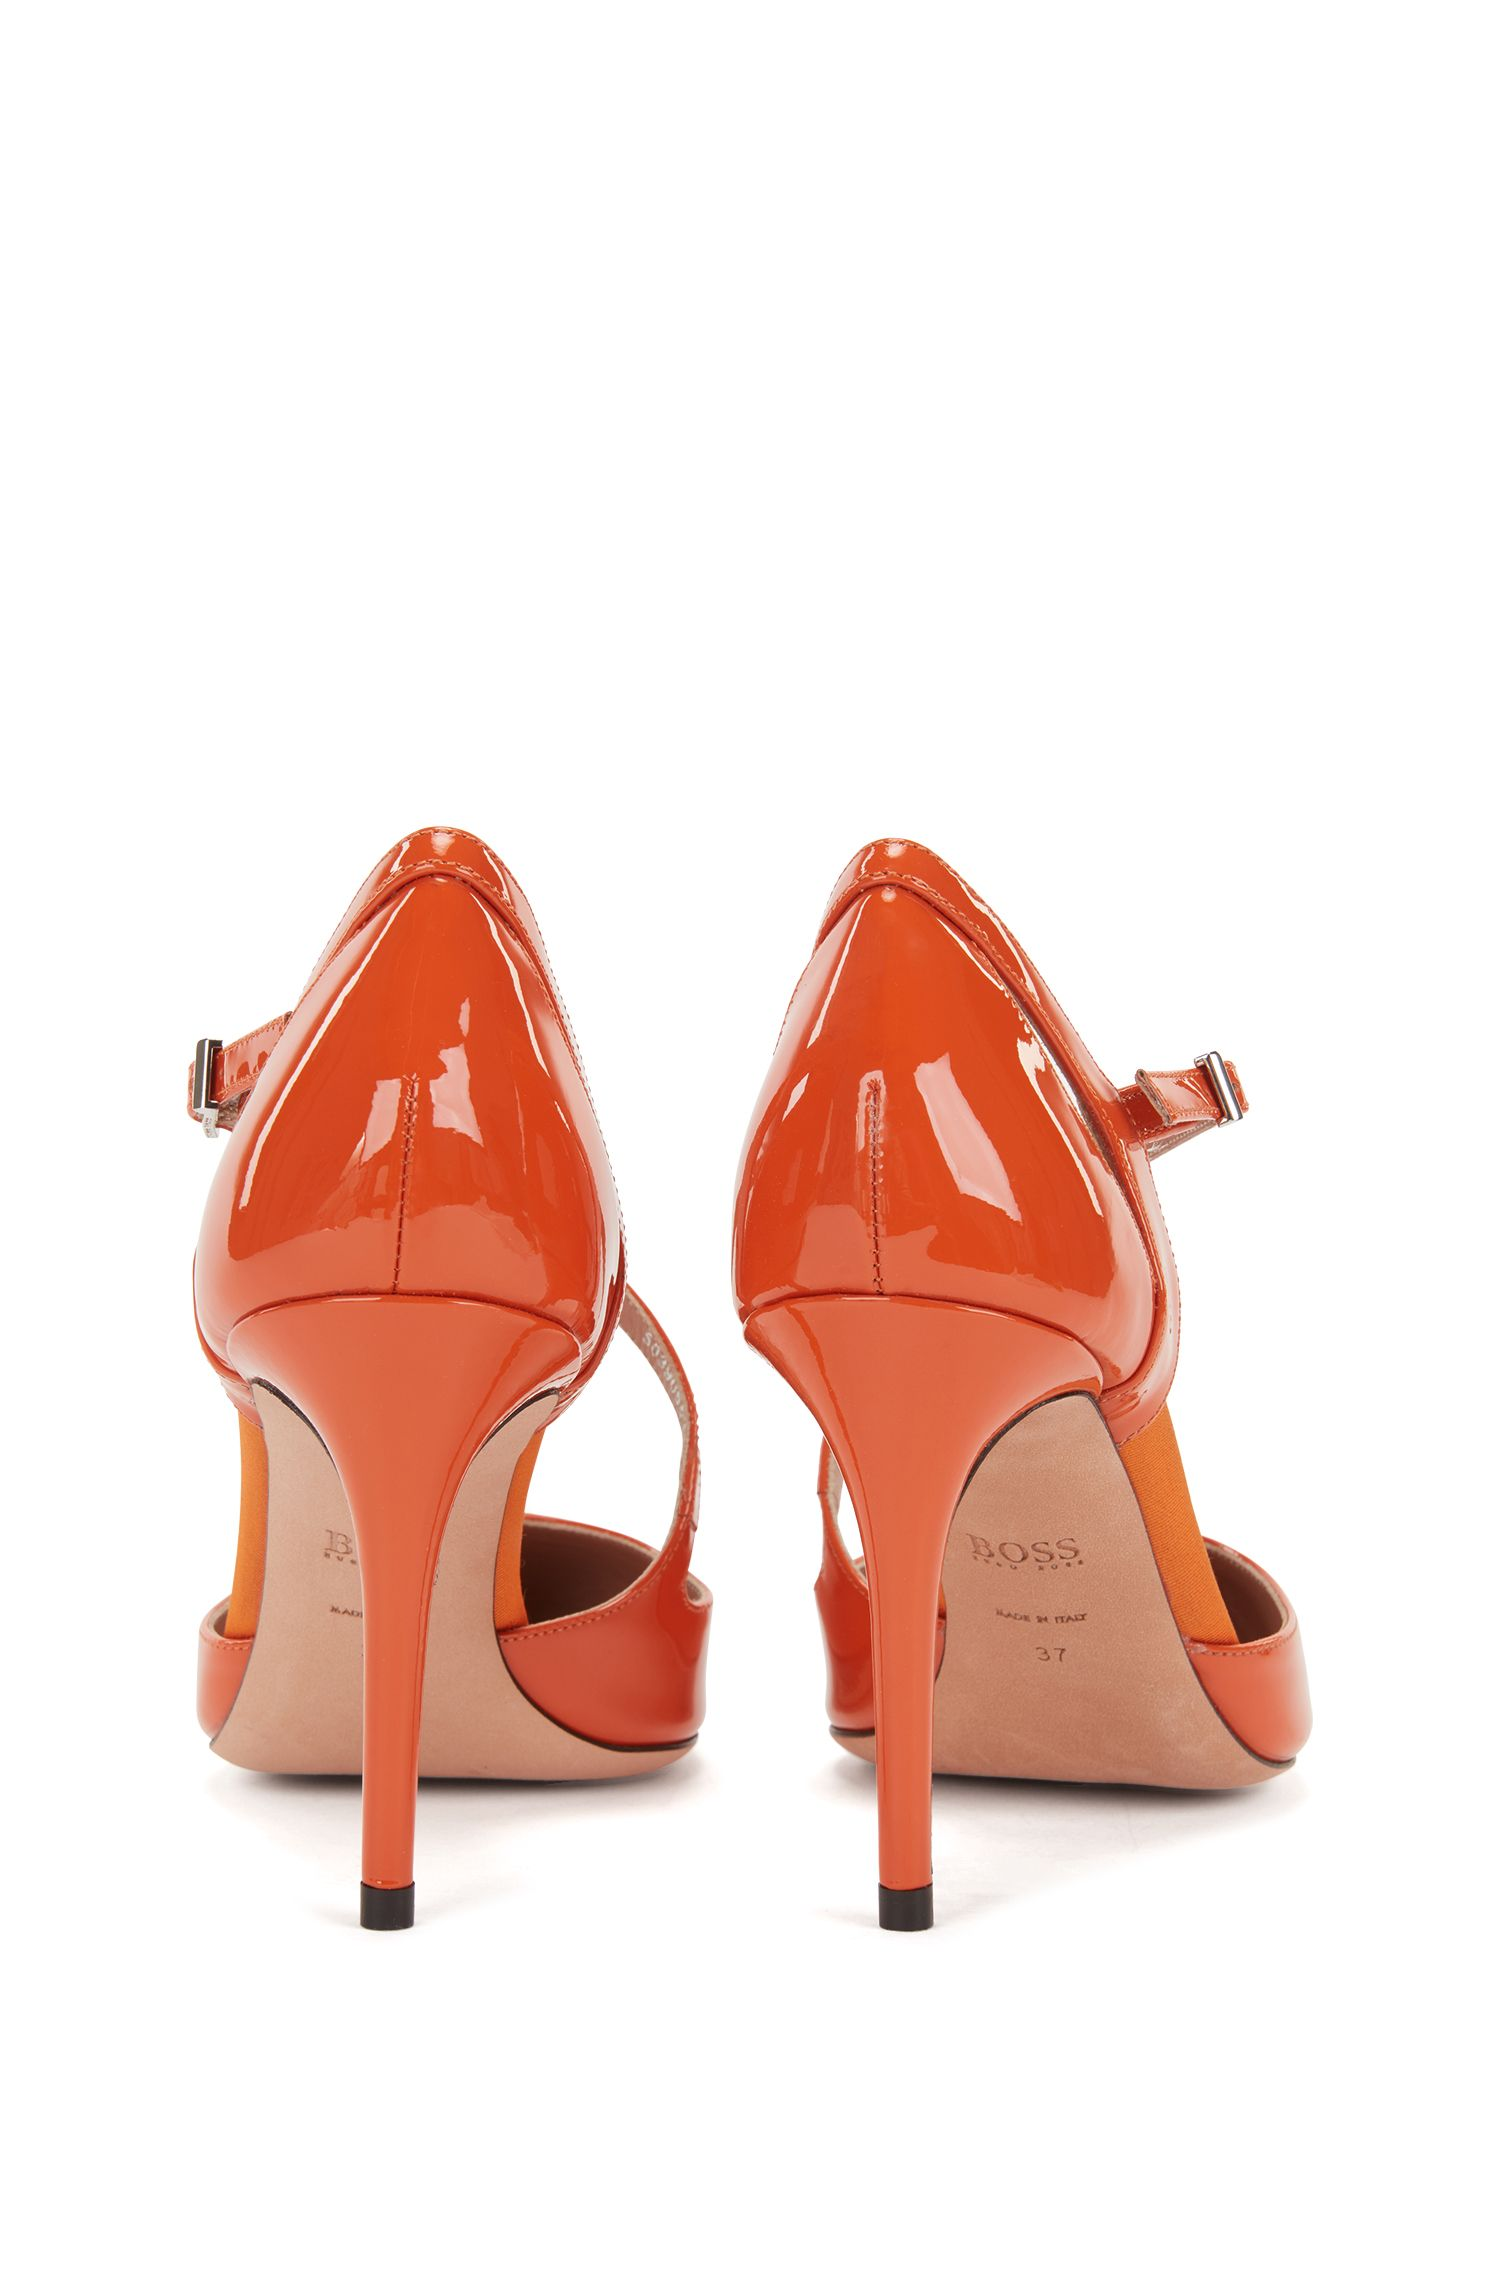 High-heeled patent-leather pumps with asymmetric strap